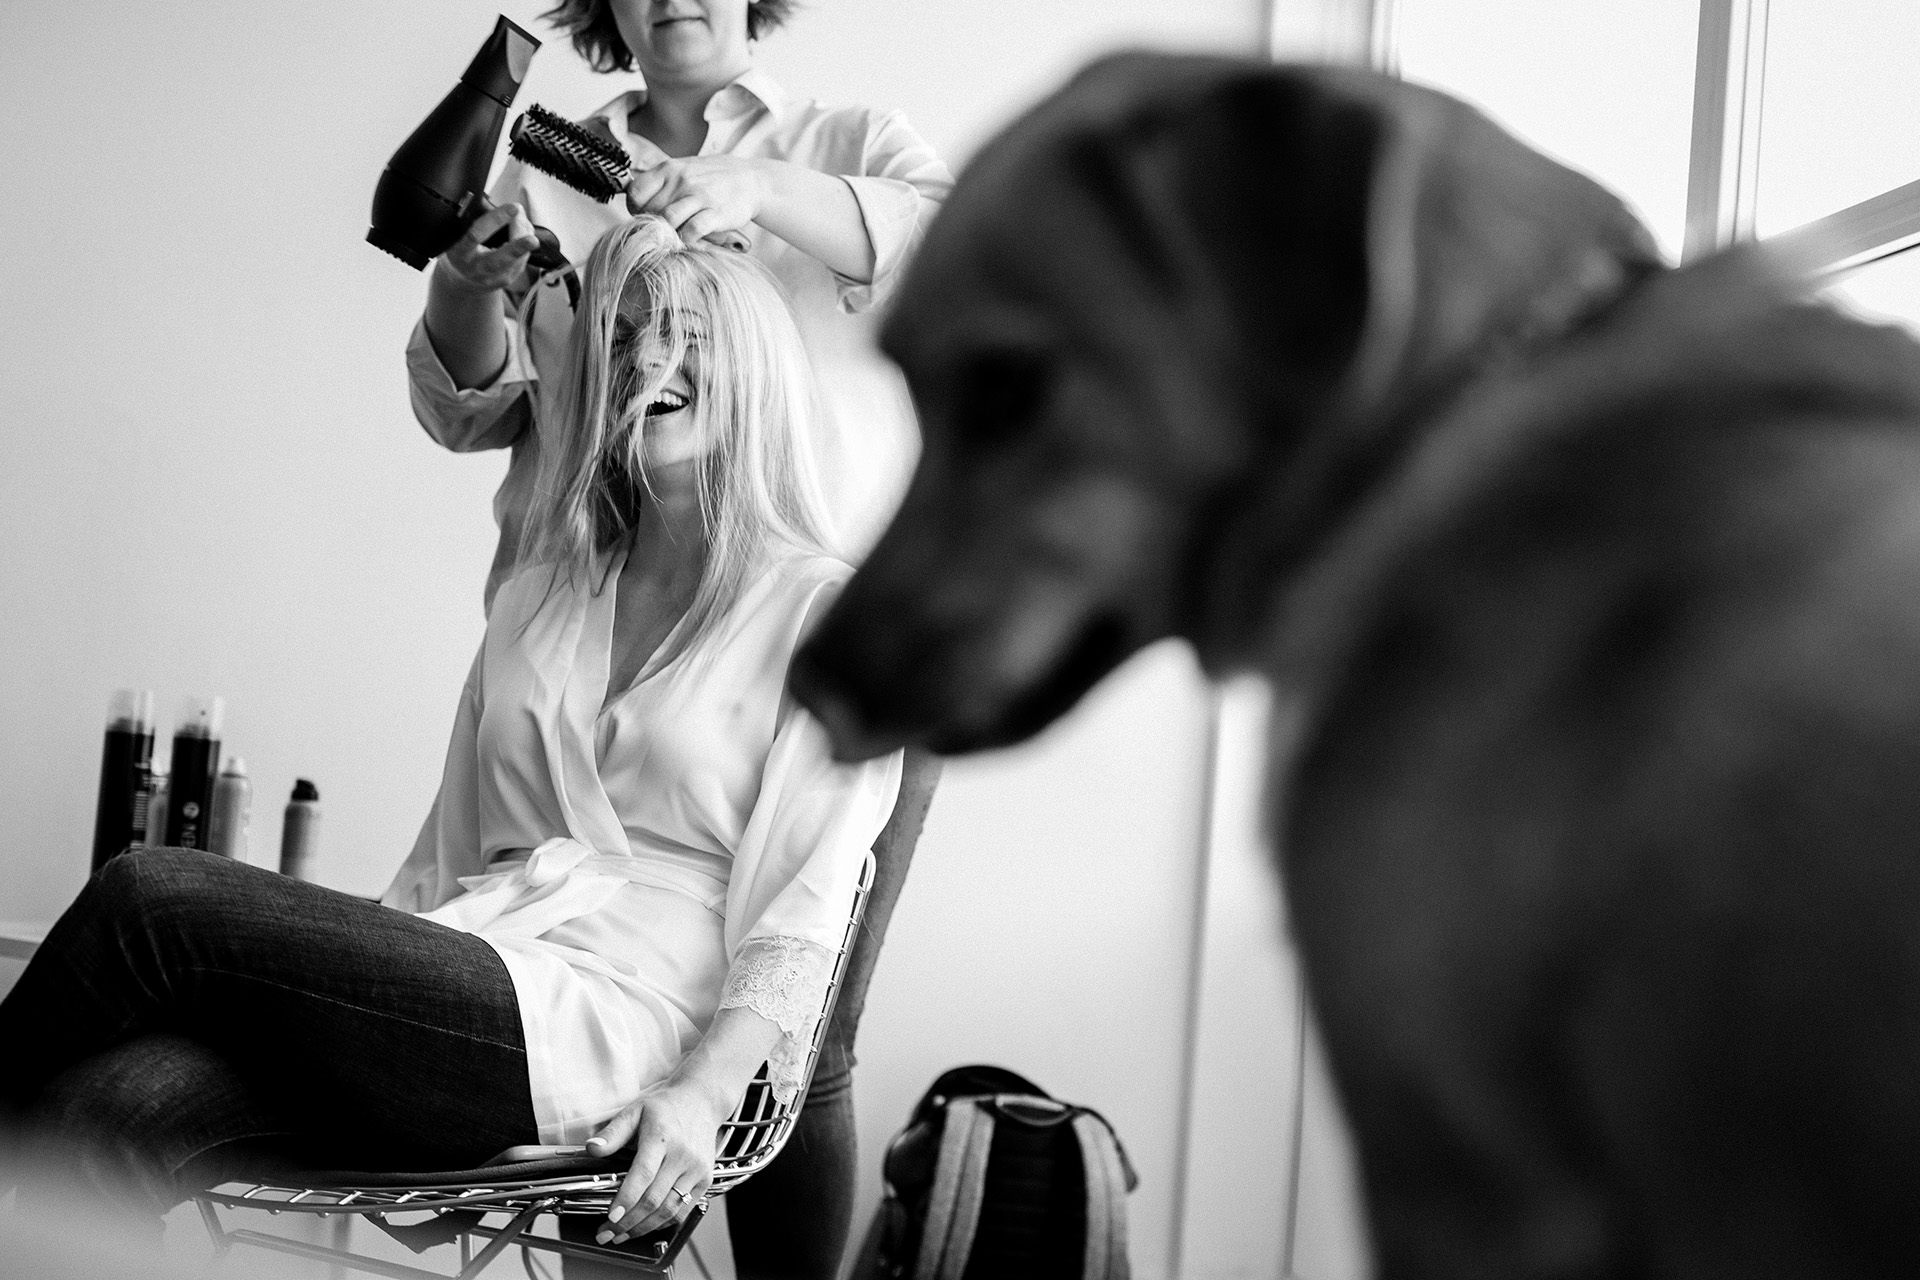 Memorable moments during getting ready photo session | the bride laughing with her dog in the foreground.